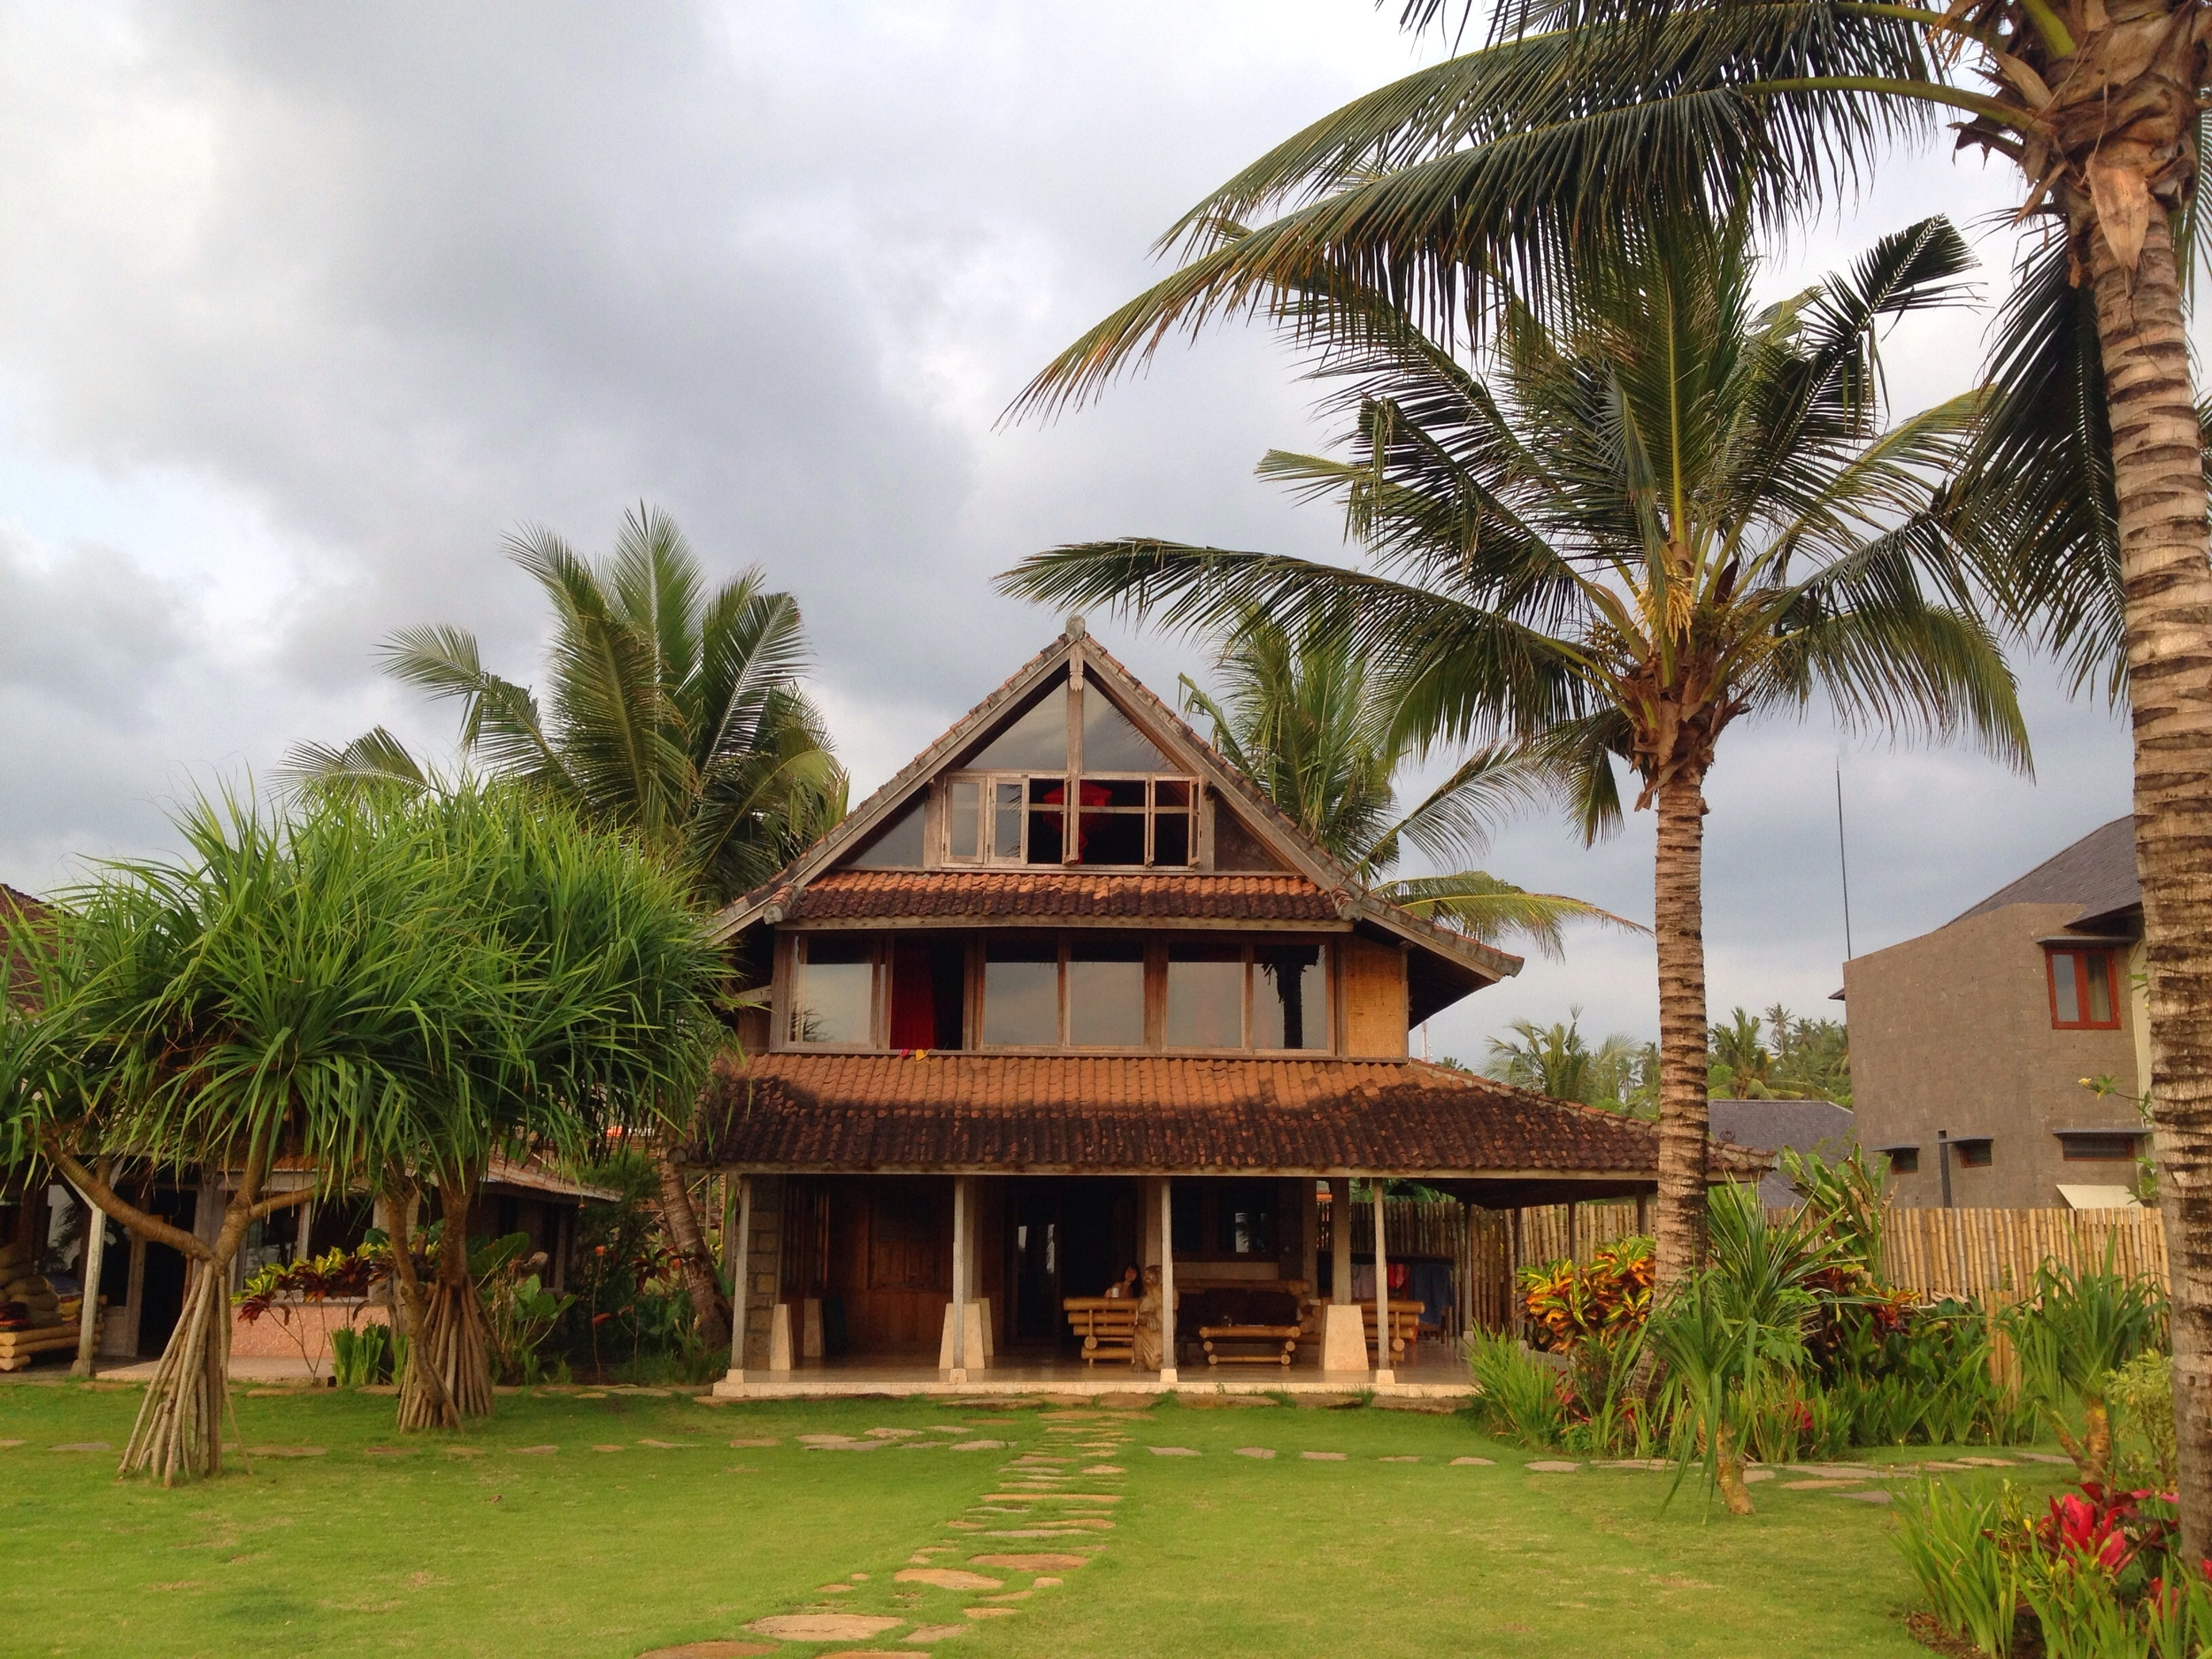 Our beachfront home at Balian Beach during the yoga teacher training in Bali. Consistent surf break every day.